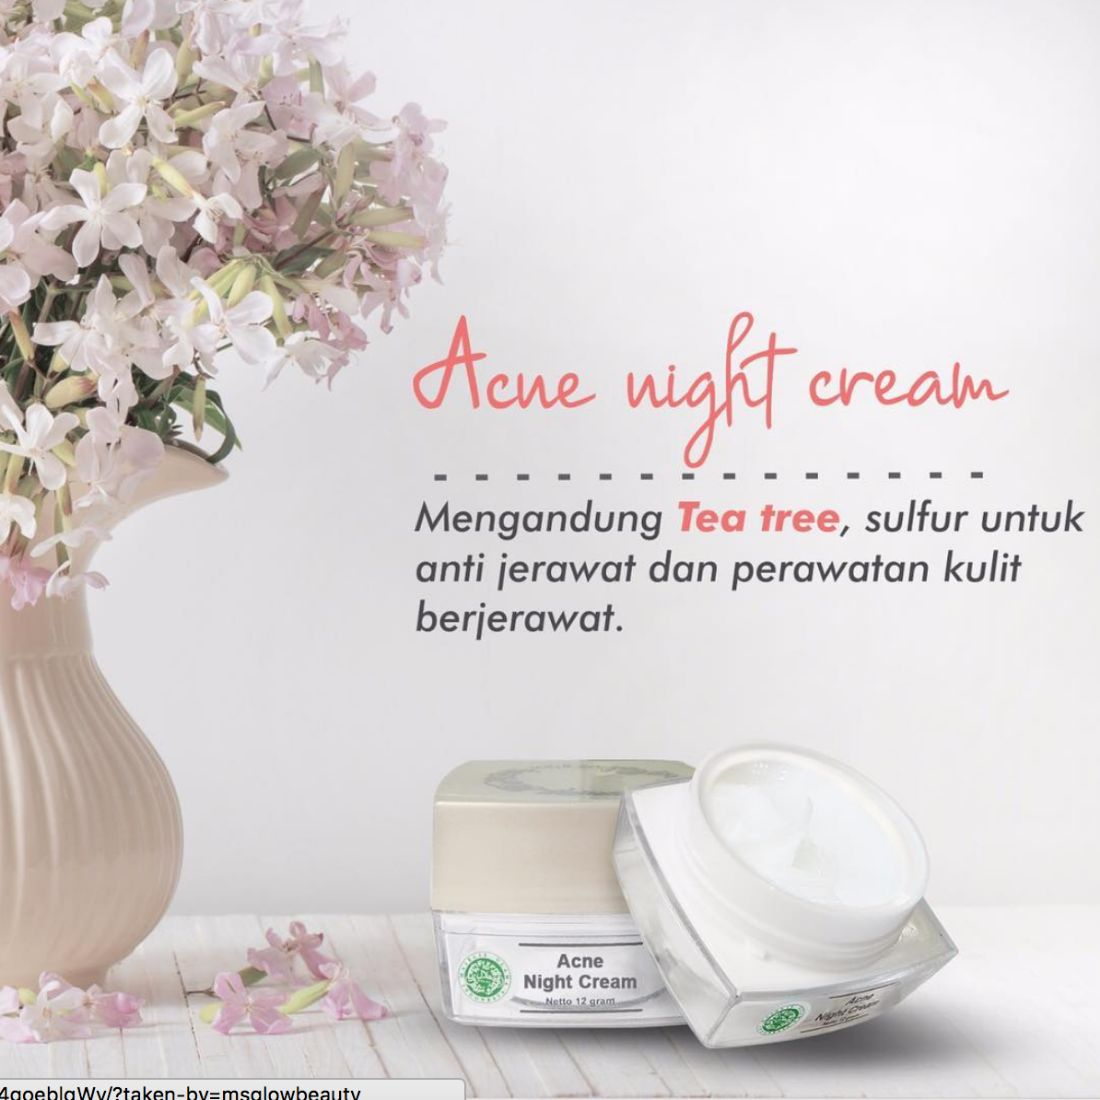 Kandungan Acne Night Cream MS Glow